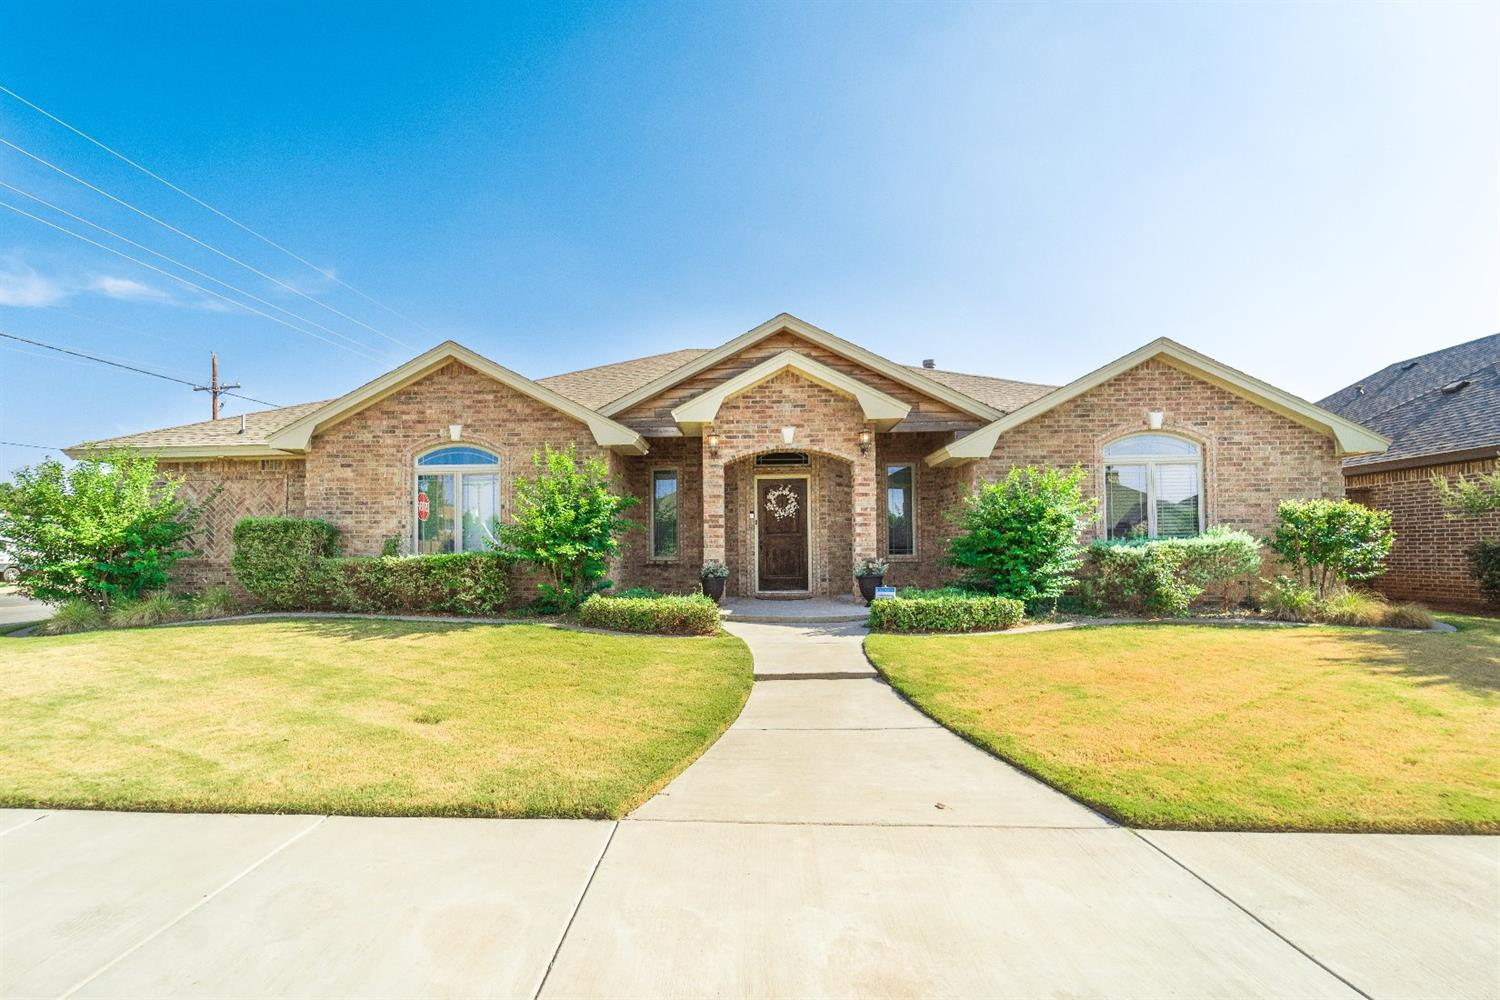 Incredible home in Bacon Crest! 4 bedroom 3 bathroom with an Open Concept floorplan & Chefs Kitchen with a walk-in pantry. Isolated master that offers a closet big enough for him and her! Large covered patio perfect for watching the West Texas Sunset! Don't miss out on this one!